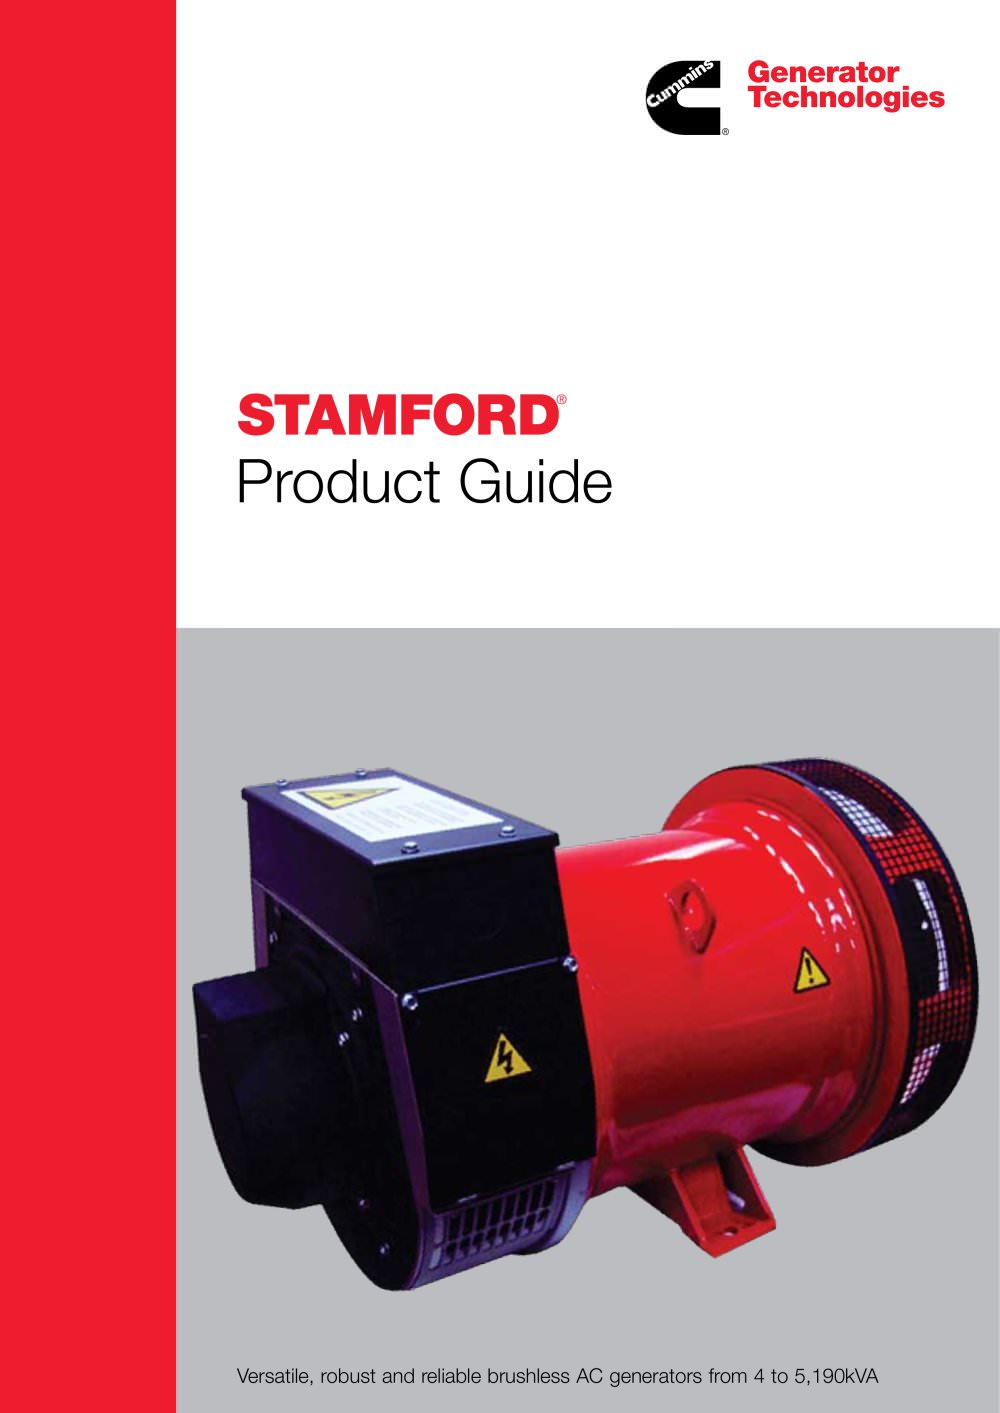 Stamford Product Guide Cummins Generator Technologies Pdf Transfer Switch Wiring Diagram Further Remote 1 16 Pages